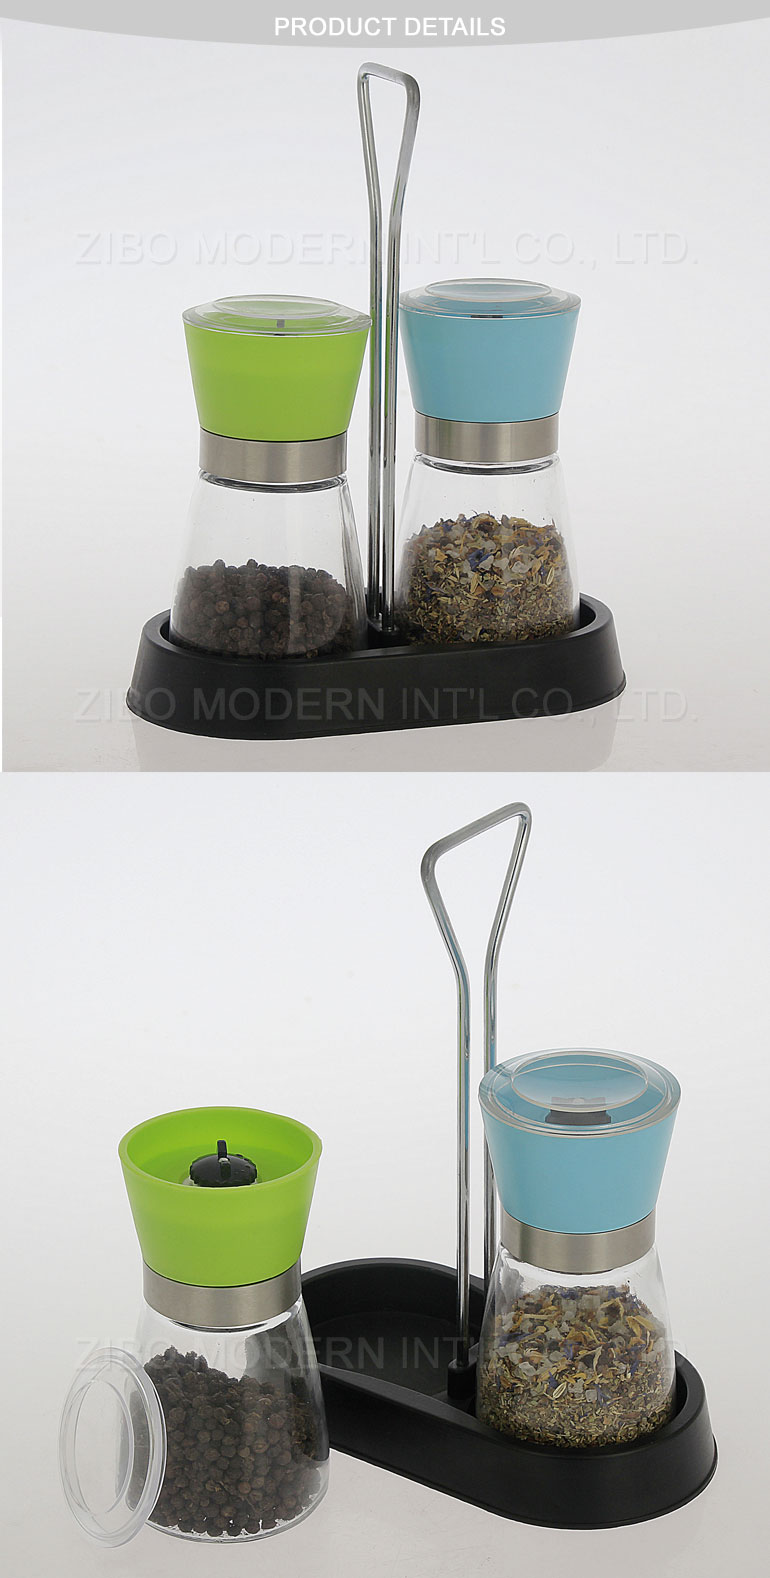 Wholesale New Design Strong Ceramic Rotor Salt Grinder Set with Spice Rack